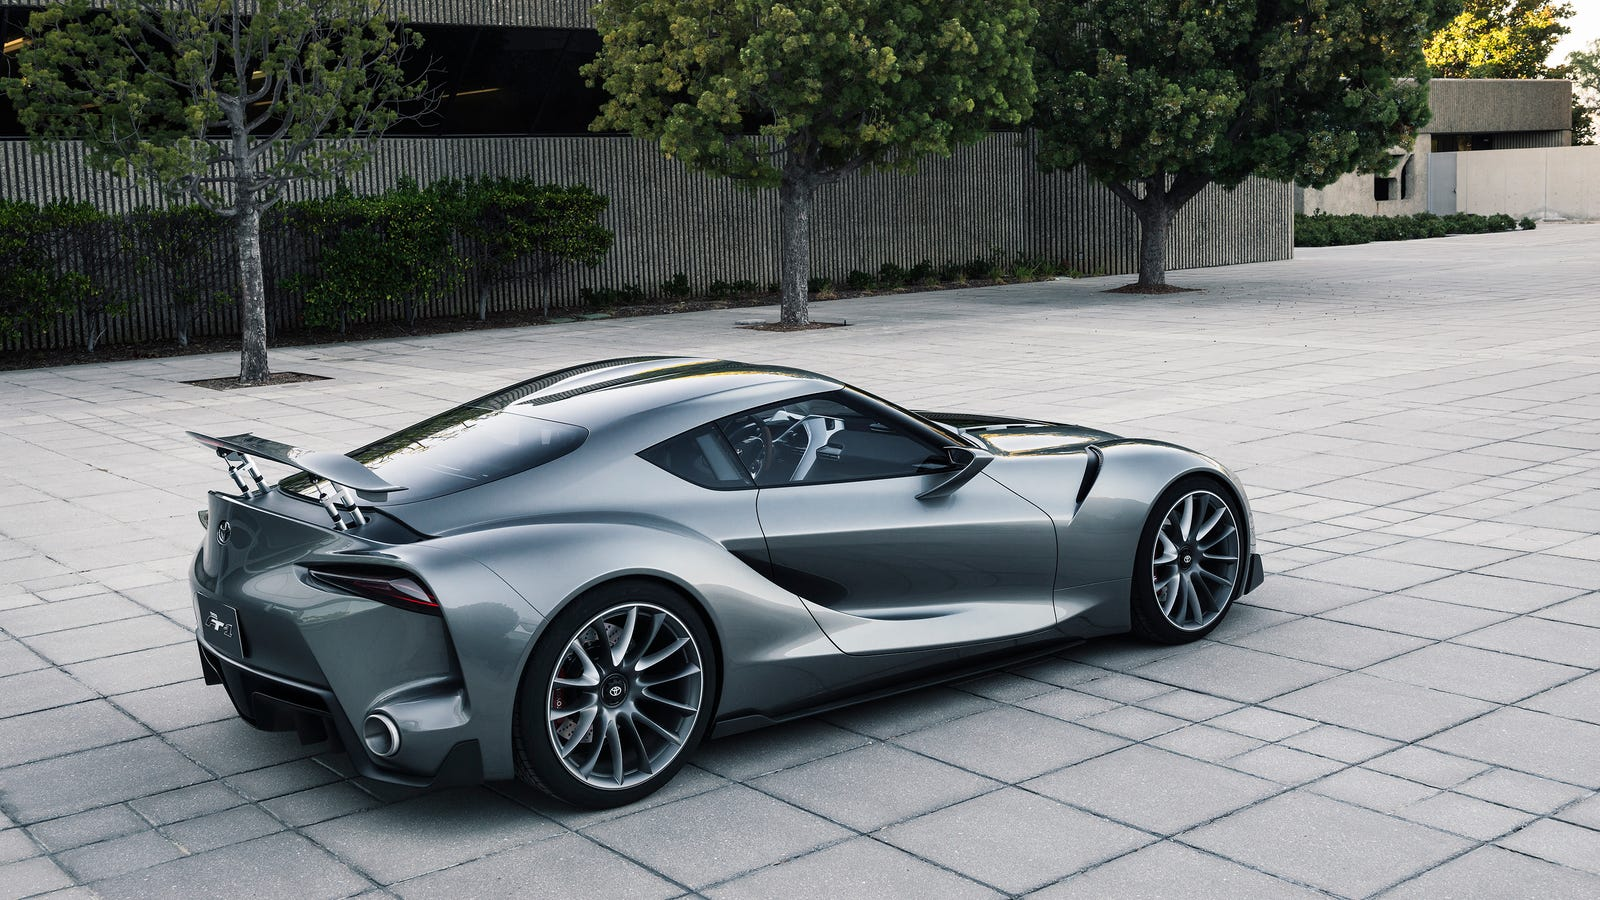 Toyotas Mythical New Supra May Have A 400Horsepower TwinTurbo V6